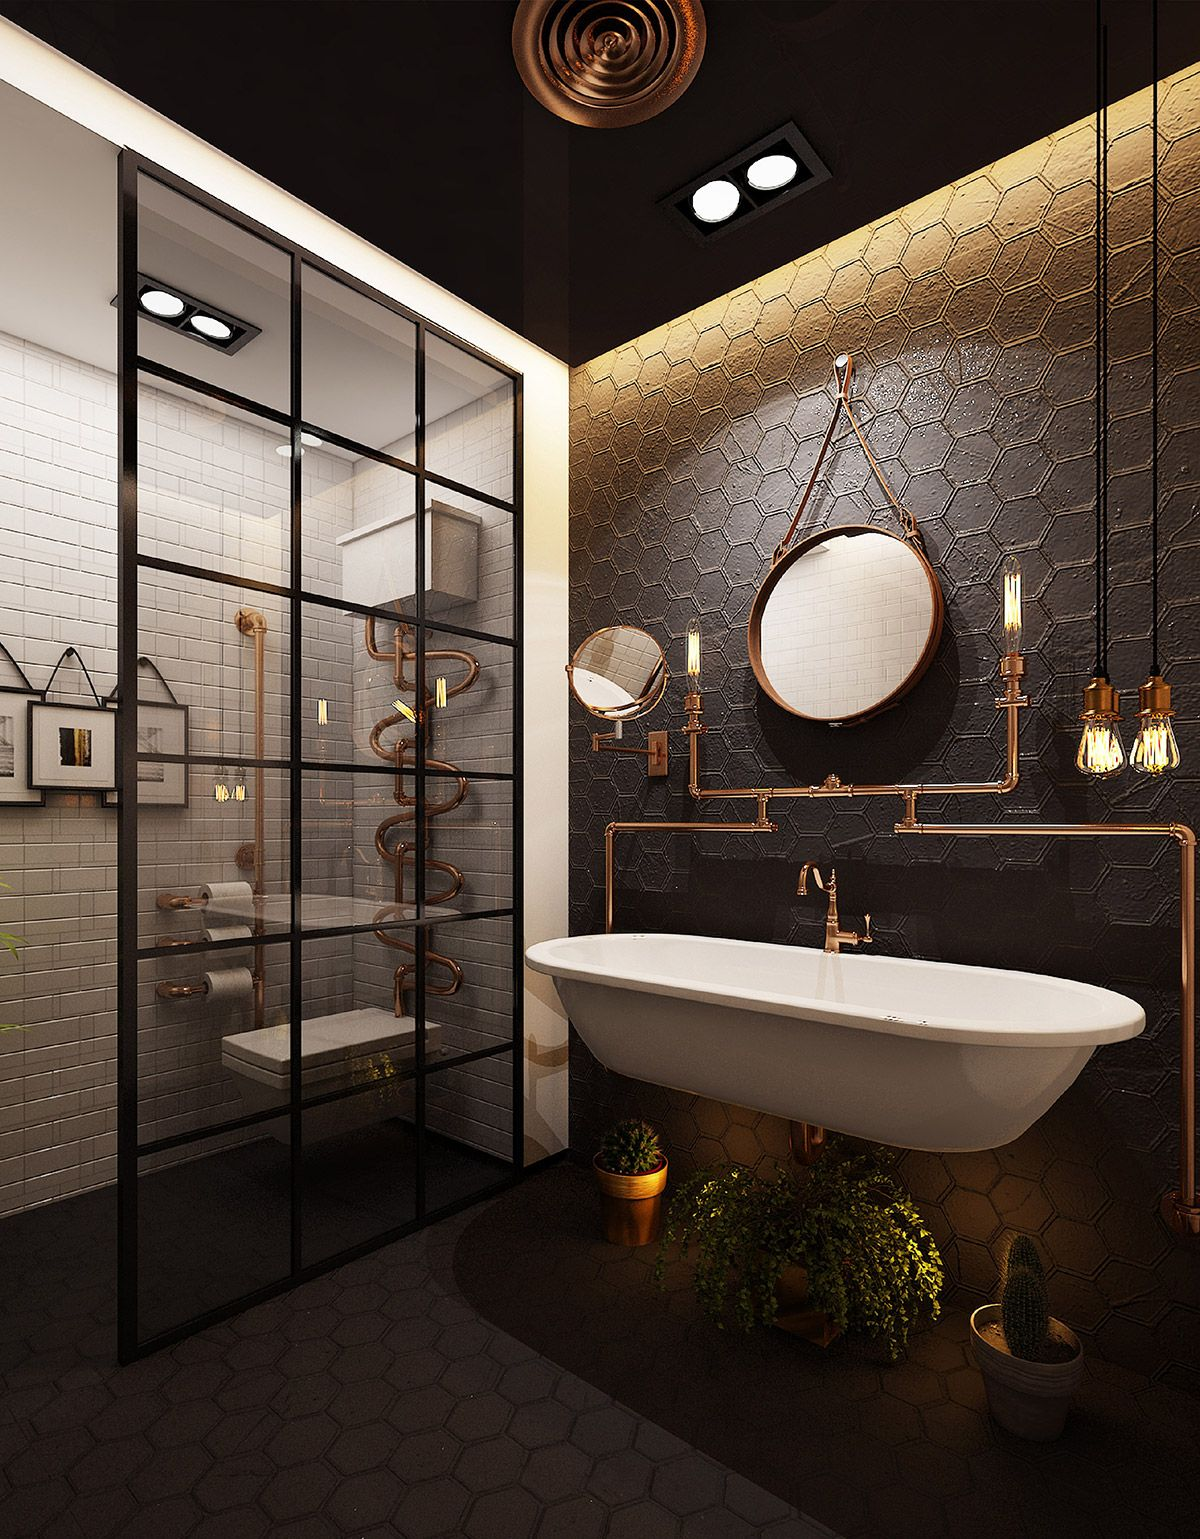 51 Industrial Style Bathrooms Plus Ideas Accessories You Can Copy From Them Industrial Bathroom Decor Industrial Style Bathroom Industrial Bathroom Design